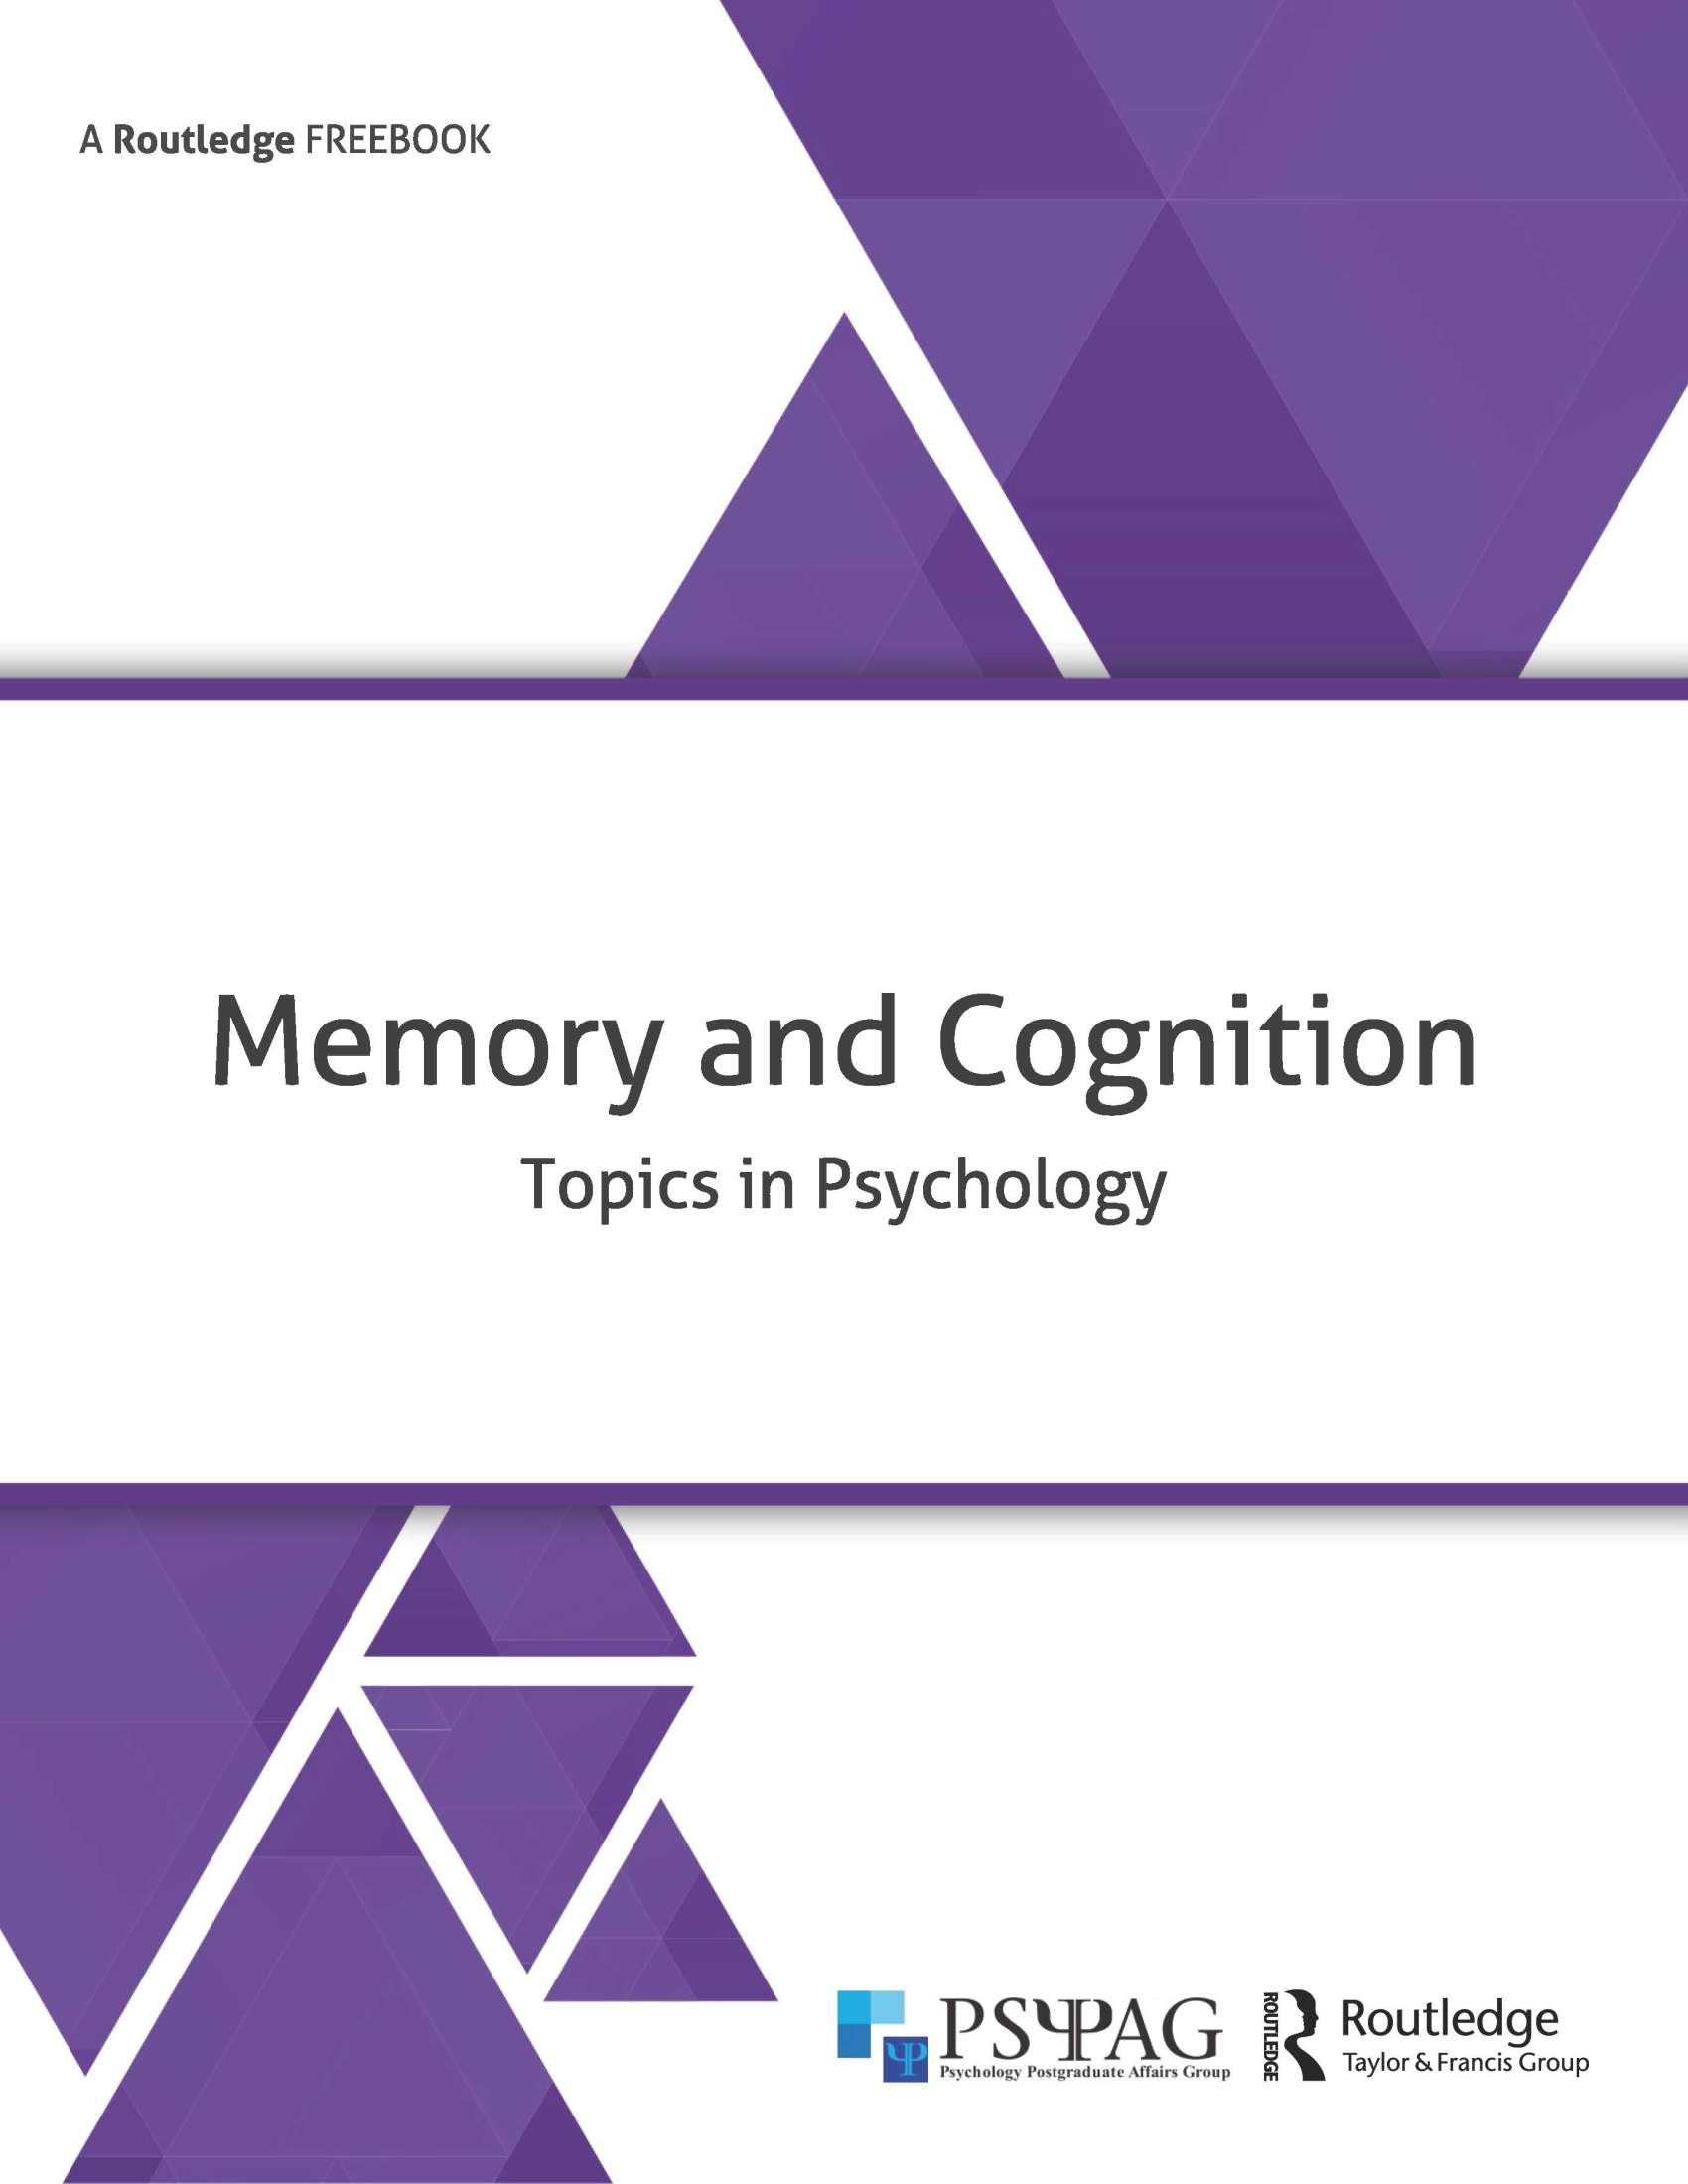 Memory and Cognition FreeBook